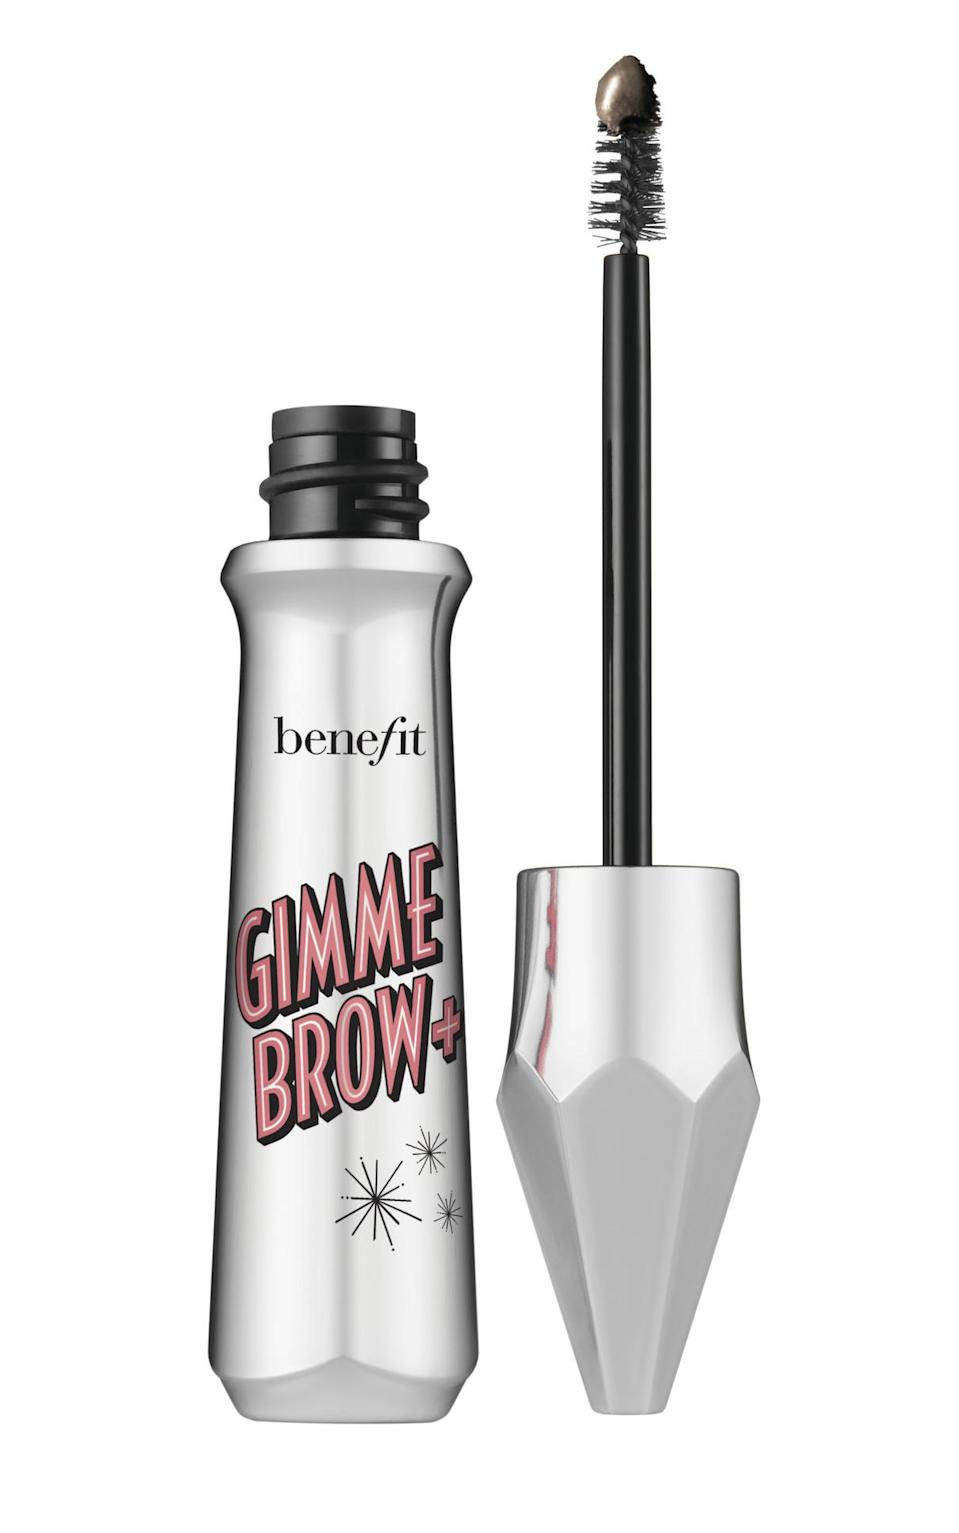 """<p>""""This brow gel is so quick and easy to use. I follow my natural shape and brush up to give the brows natural-looking fullness.""""</p> <p><strong>Buy It!</strong> Benefit Cosmetics Gimme Brow+, $24; <a href=""""https://ulta.ztk5.net/c/249354/164999/3037?subId1=PEOThe8BeautyProductsMirandaKerrCantLiveWithoutjfields1271StyGal12662760202104I&u=https%3A%2F%2Fwww.ulta.com%2Fgimme-brow-tinted-volumizing-eyebrow-gel%3FproductId%3DxlsImpprod14191015"""" rel=""""sponsored noopener"""" target=""""_blank"""" data-ylk=""""slk:ulta.com"""" class=""""link rapid-noclick-resp"""">ulta.com</a></p>"""